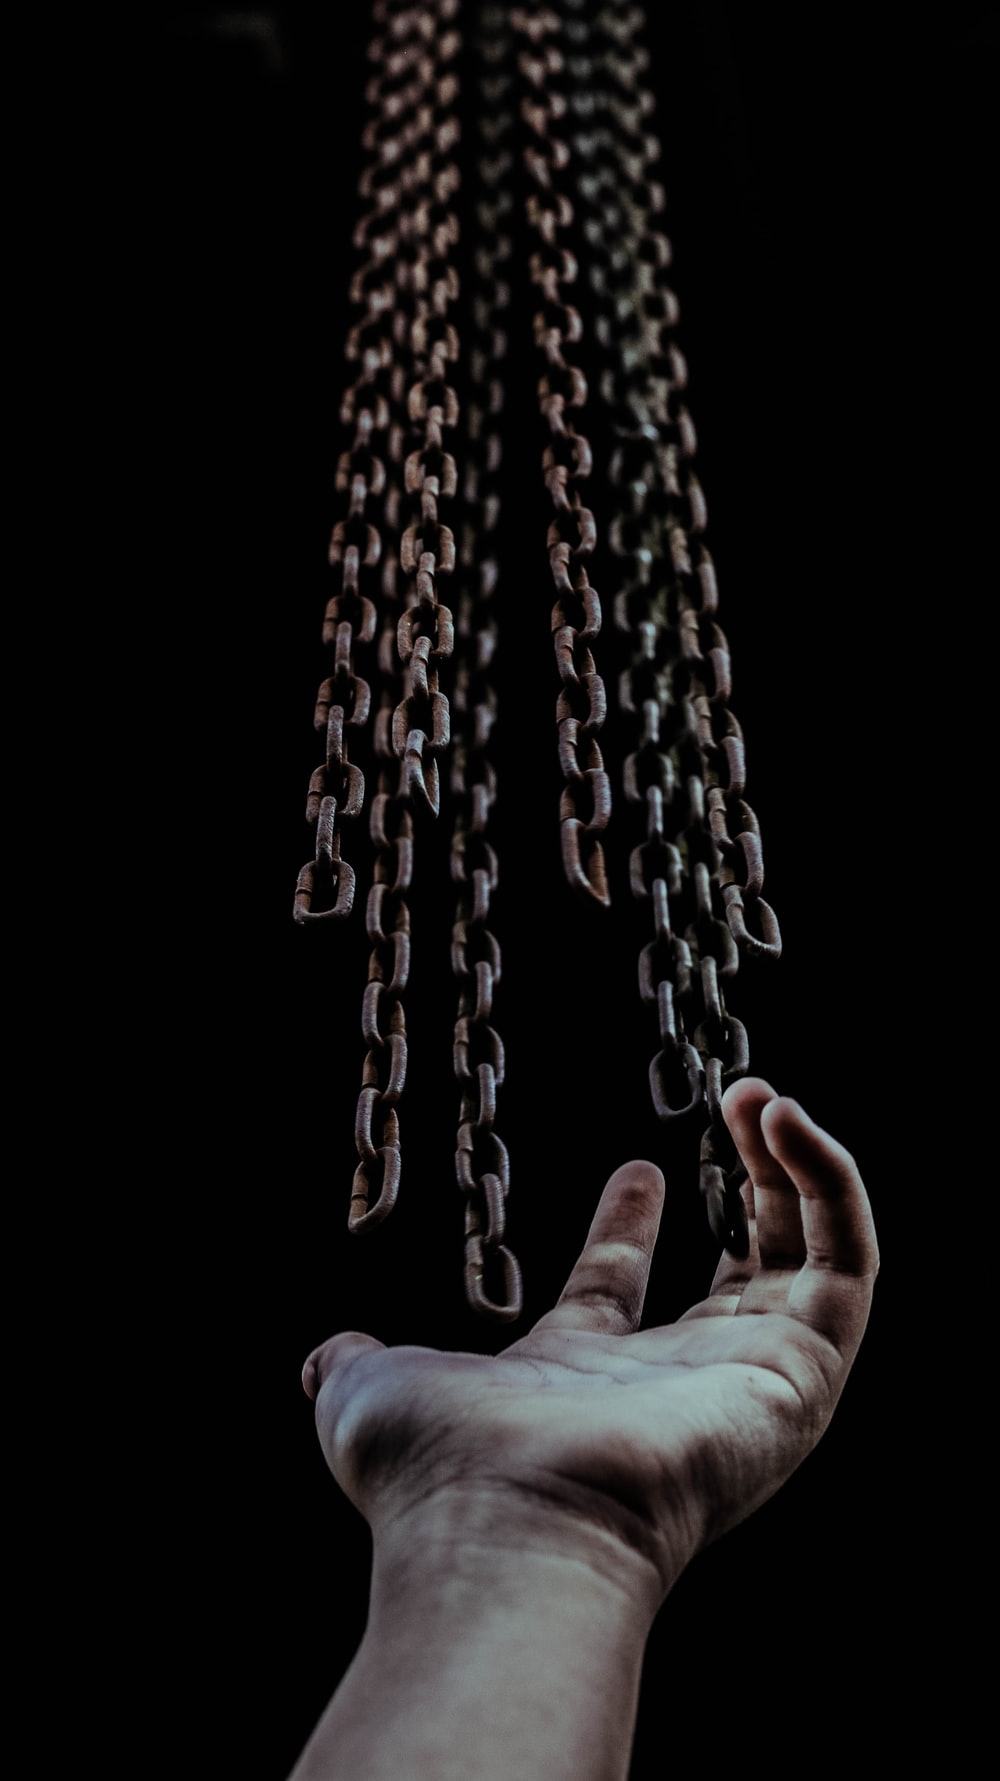 Mans Hand And Chains